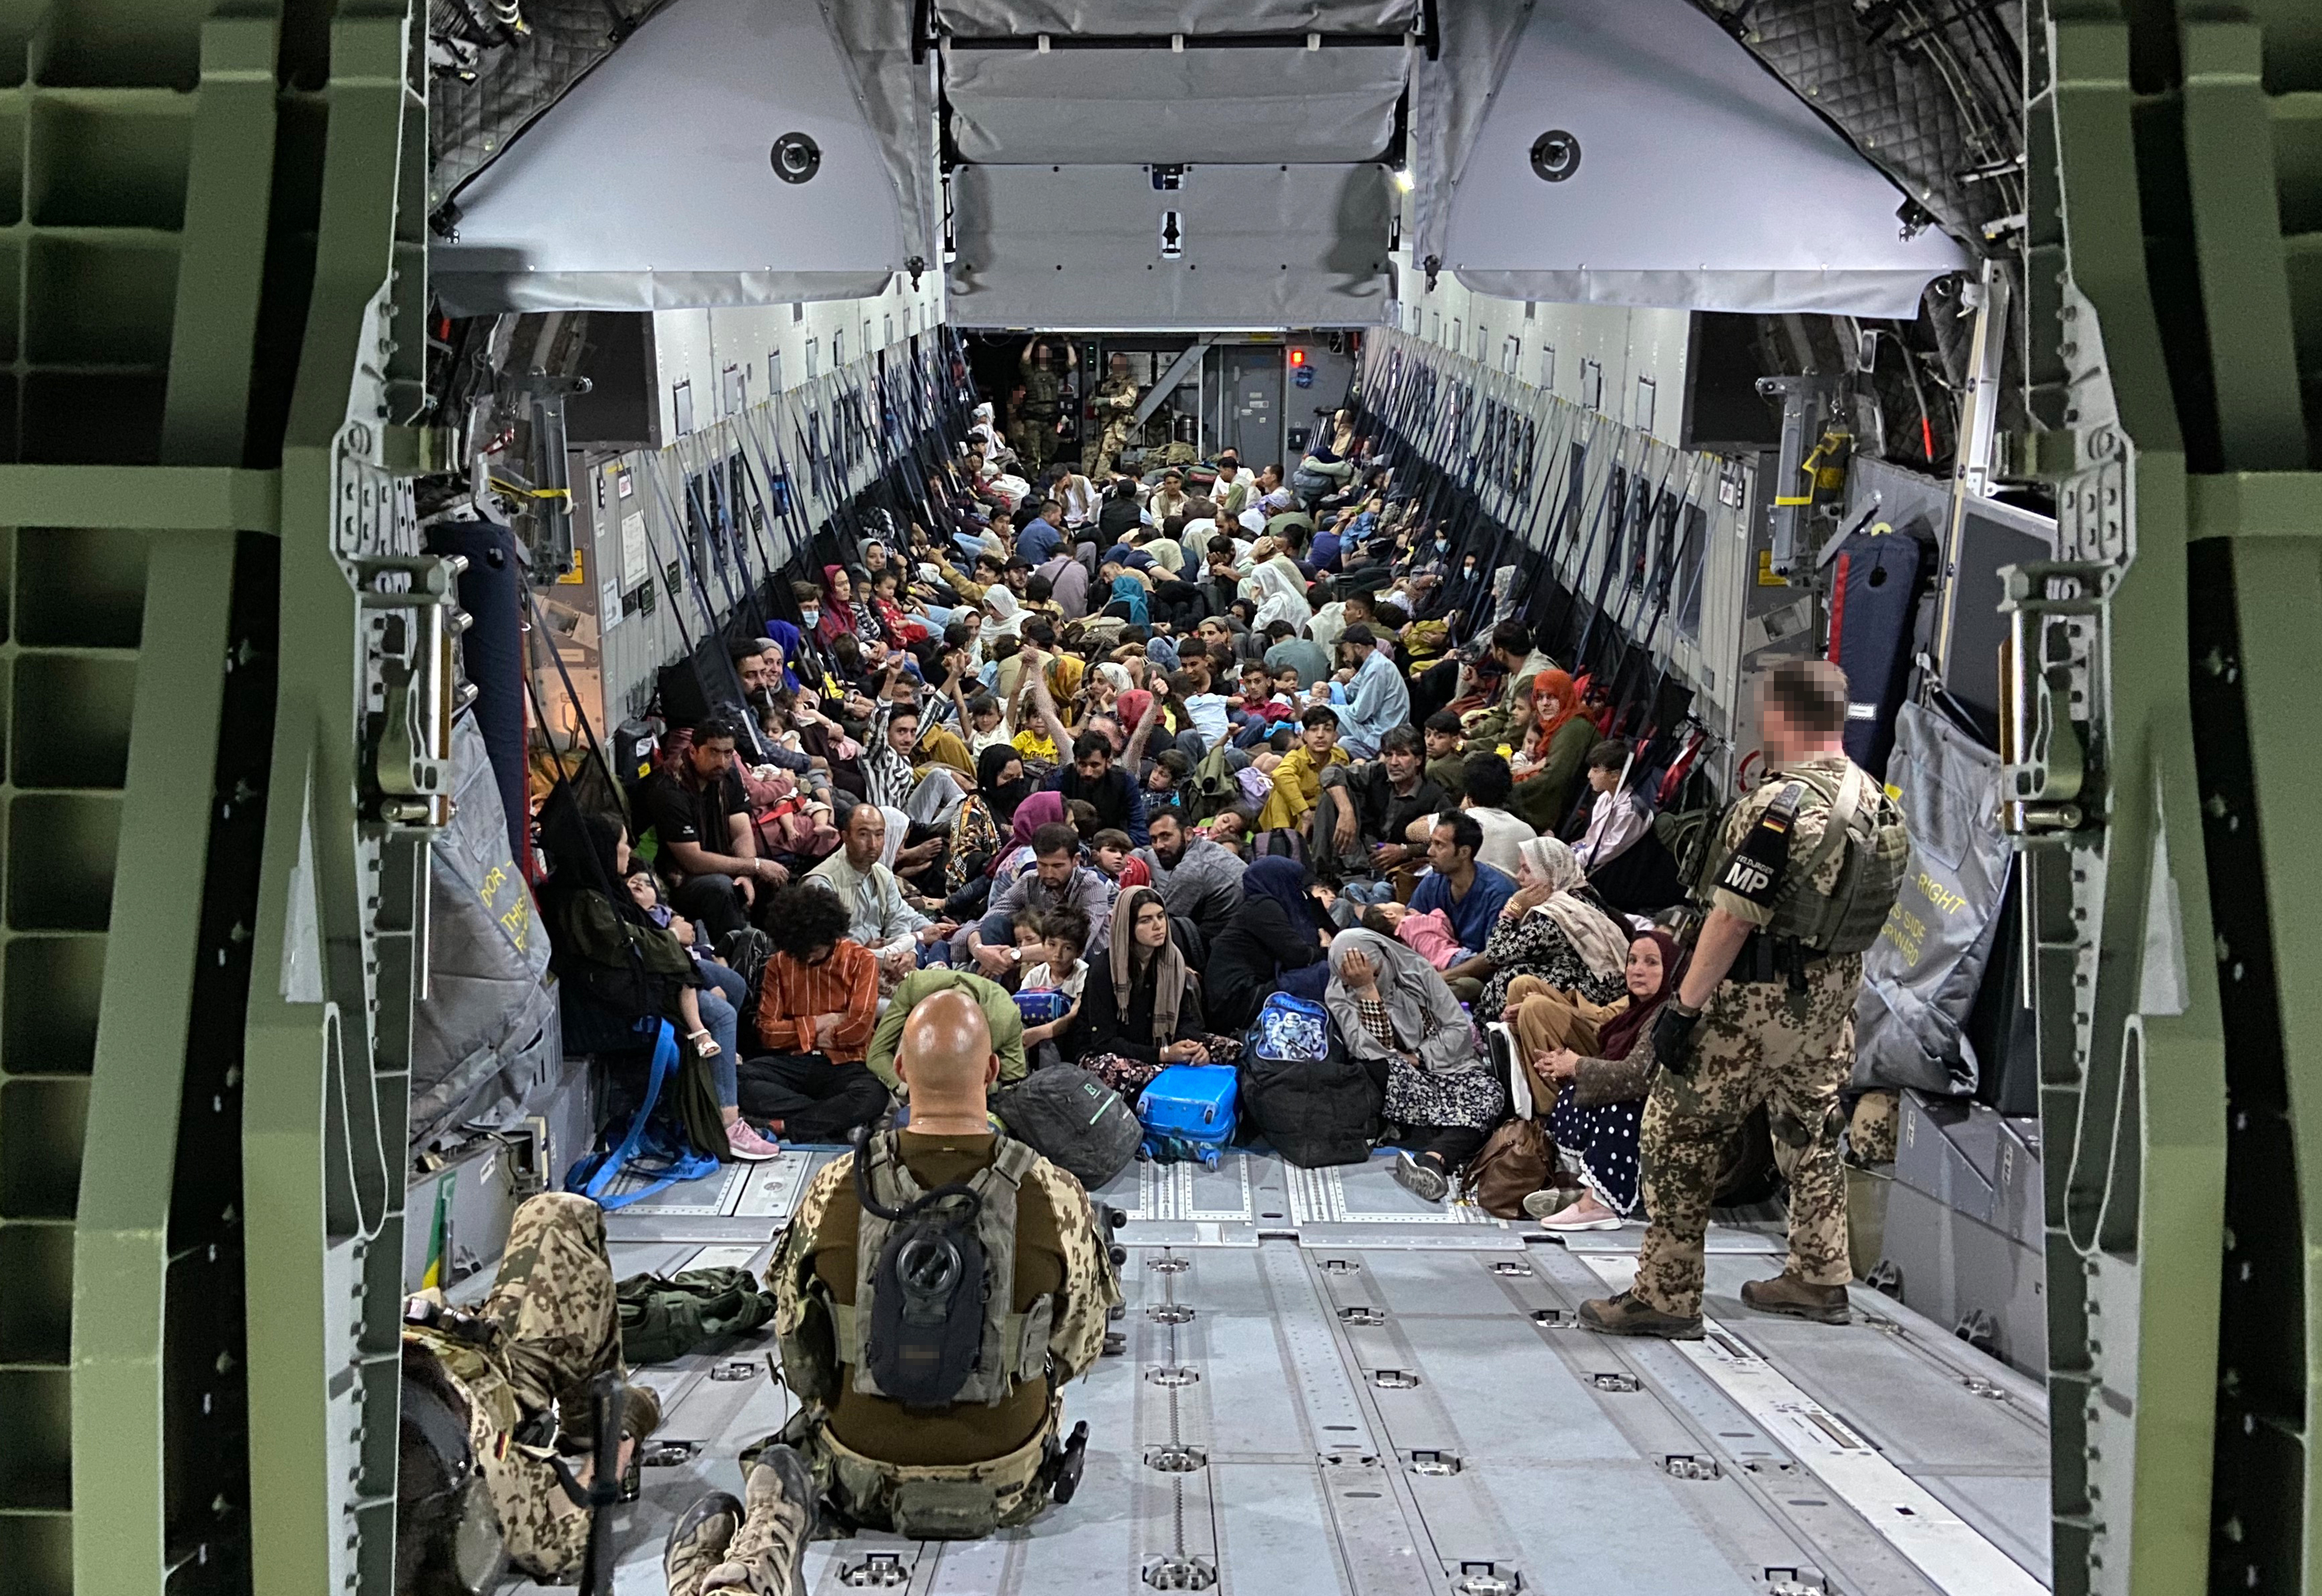 In this handout image provided by the Bundeswehr, evacuees from Kabul sit inside a military aircraft as they arrive at Tashkent Airport in Tashkent, Uzbekistan. (Photo by Handout/Bundeswehr via Getty Images)